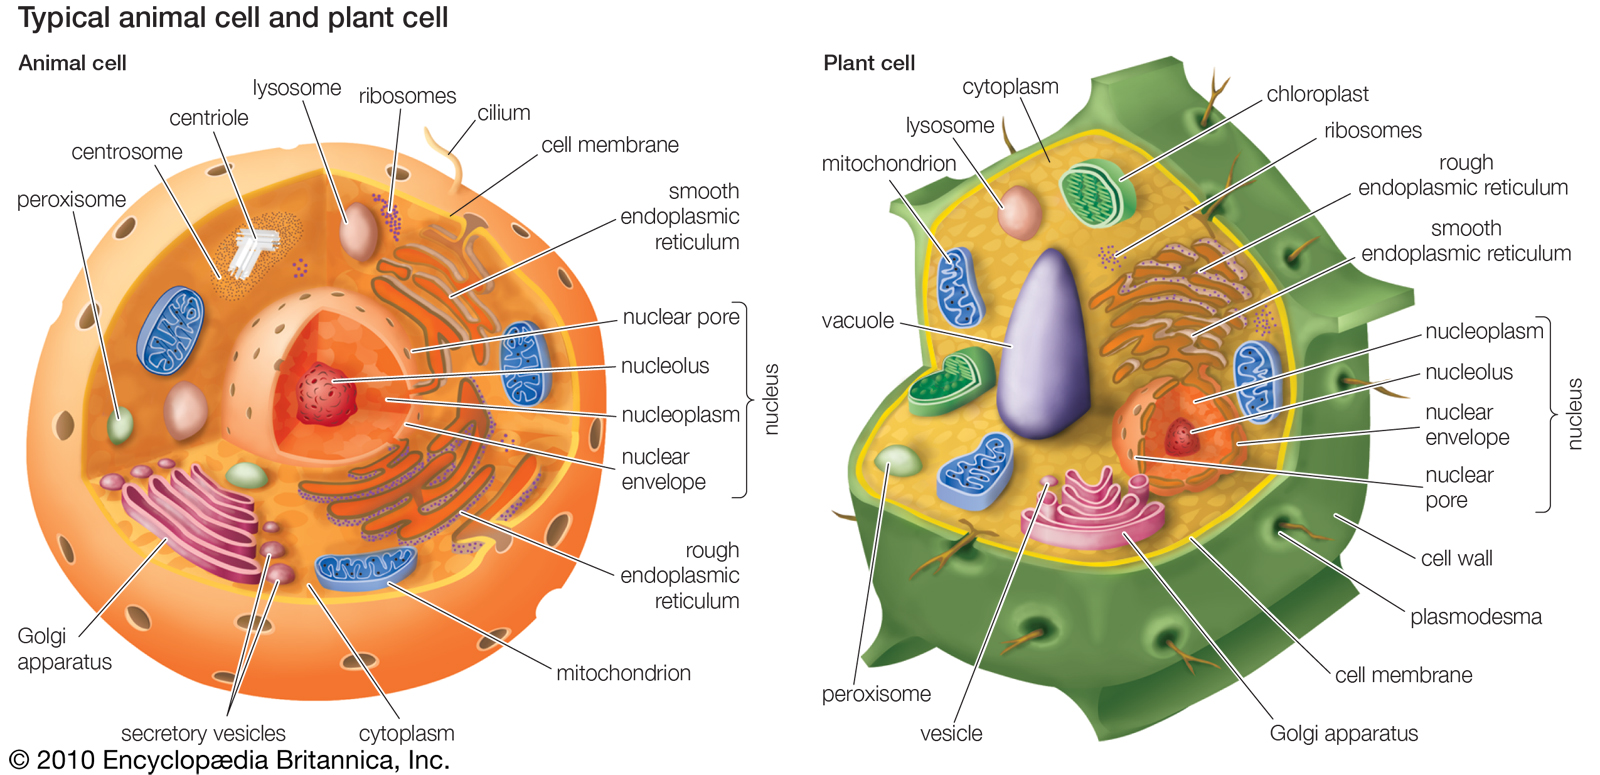 Organelles In Cells With Images Sammoor10 Storify